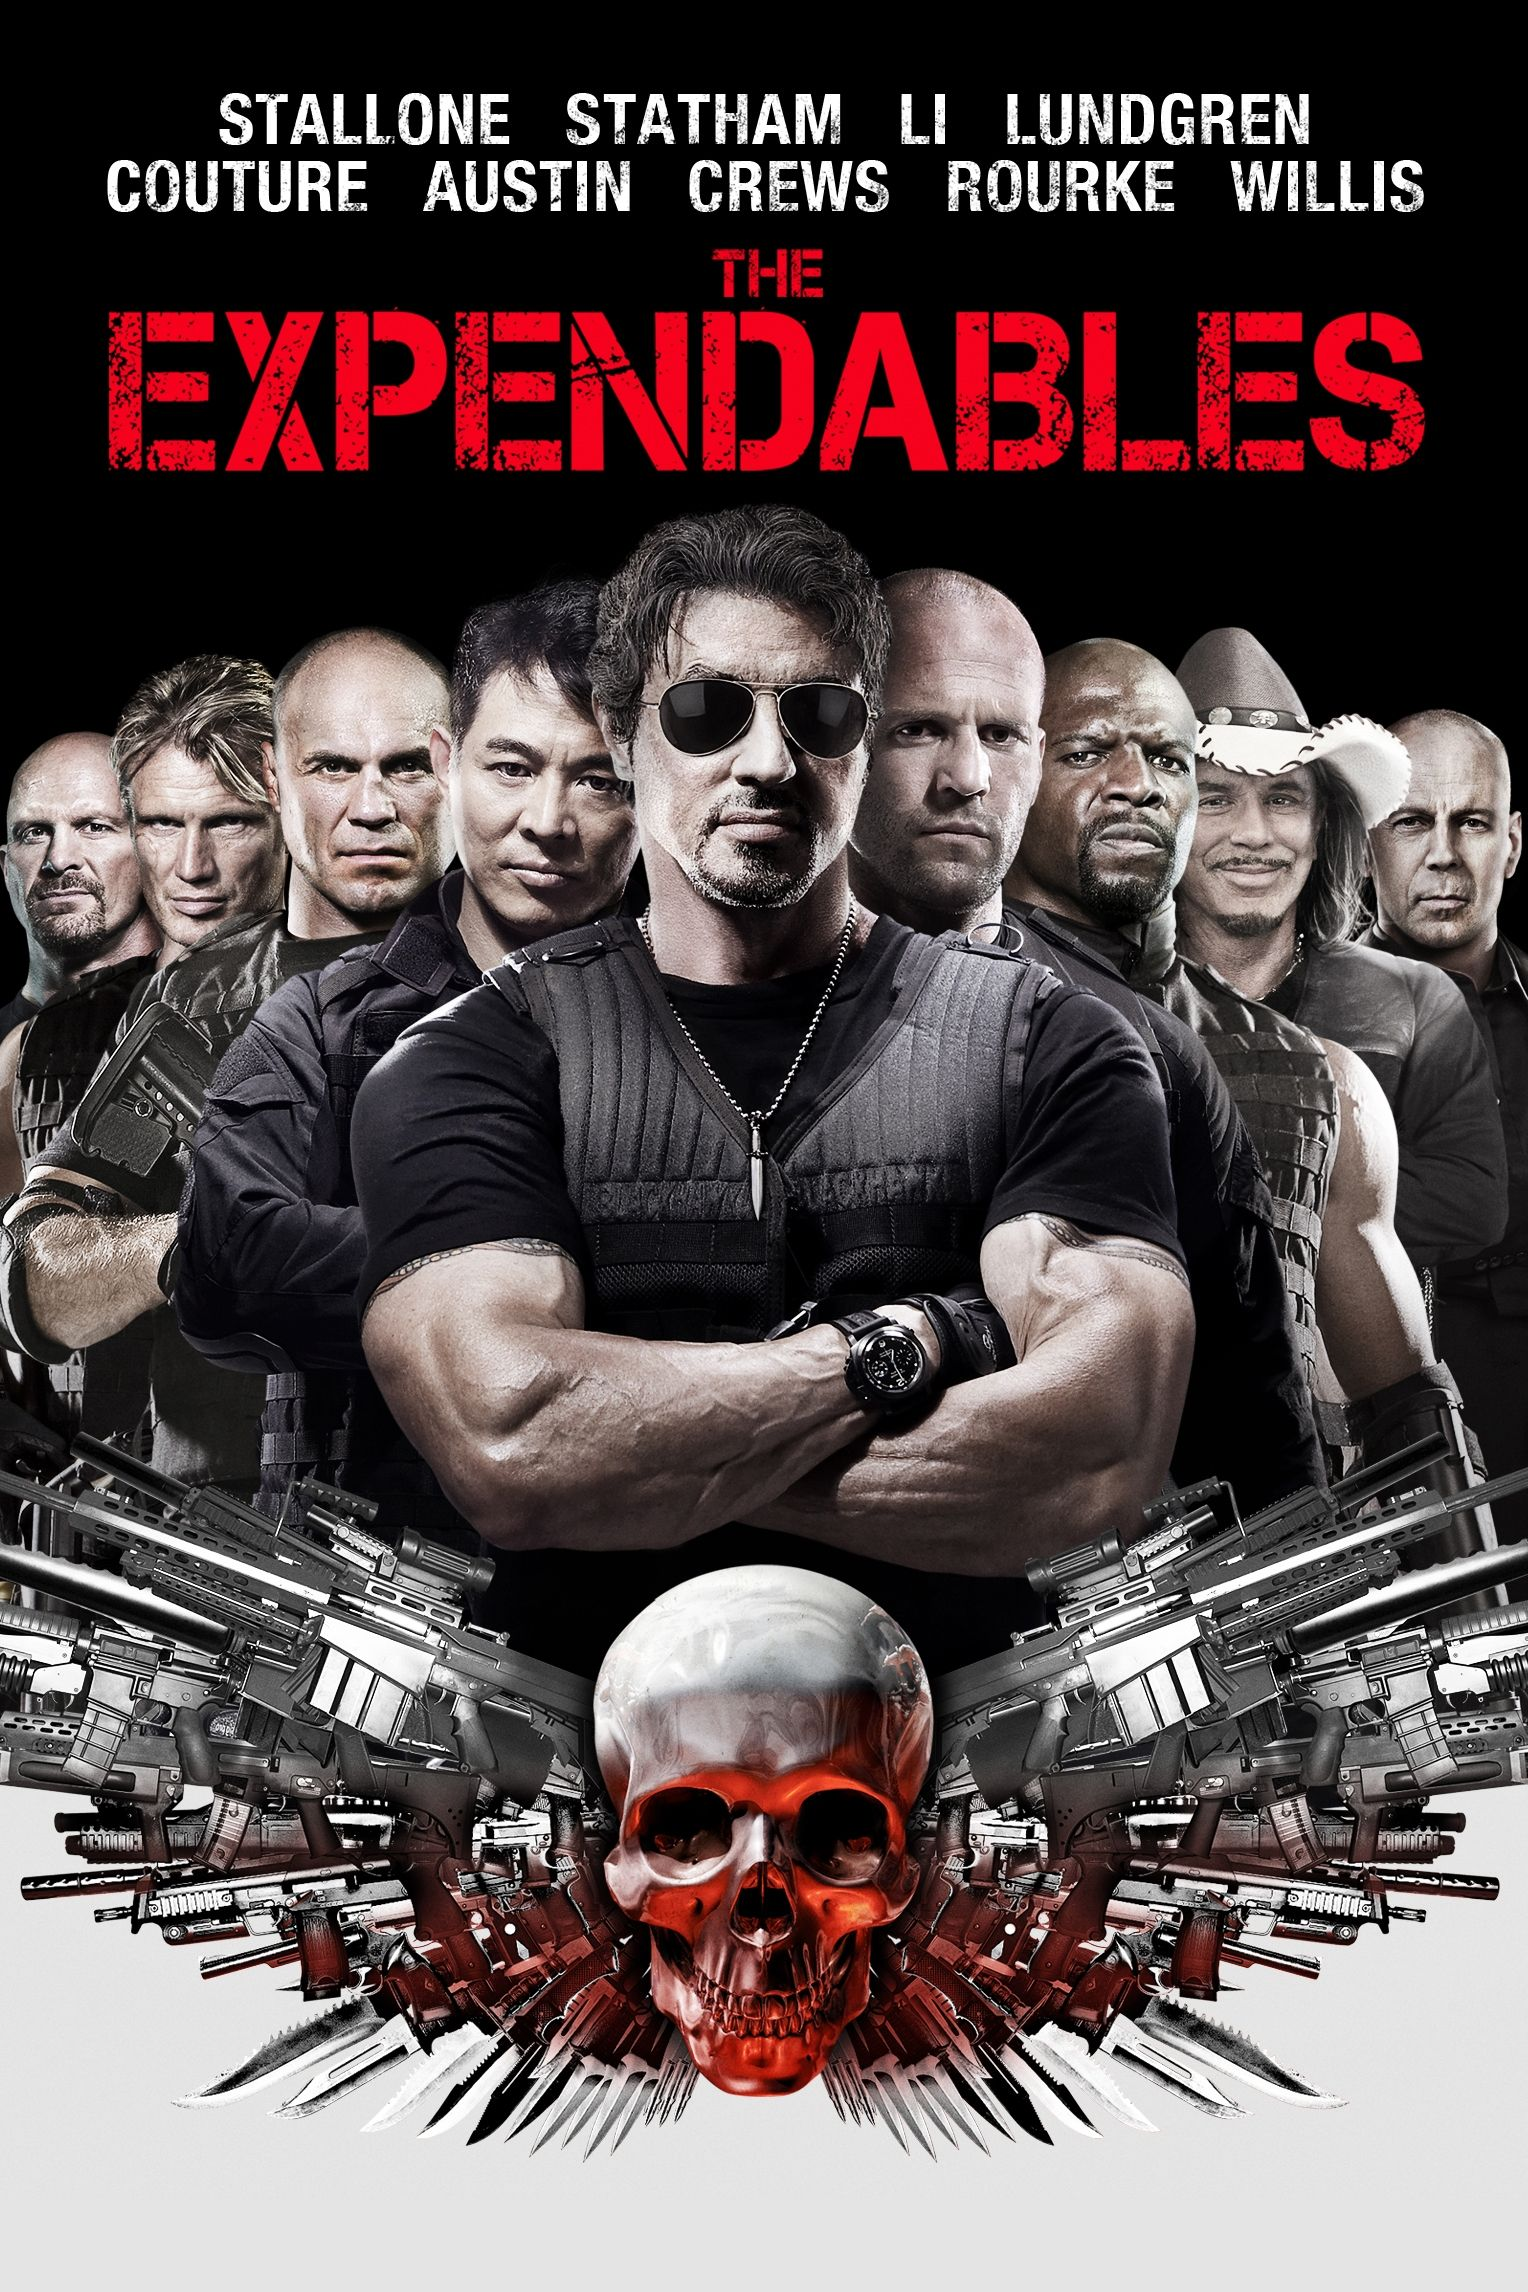 The Expendables | MOVIES YOU WANT TO REVISIT | Pinterest ...